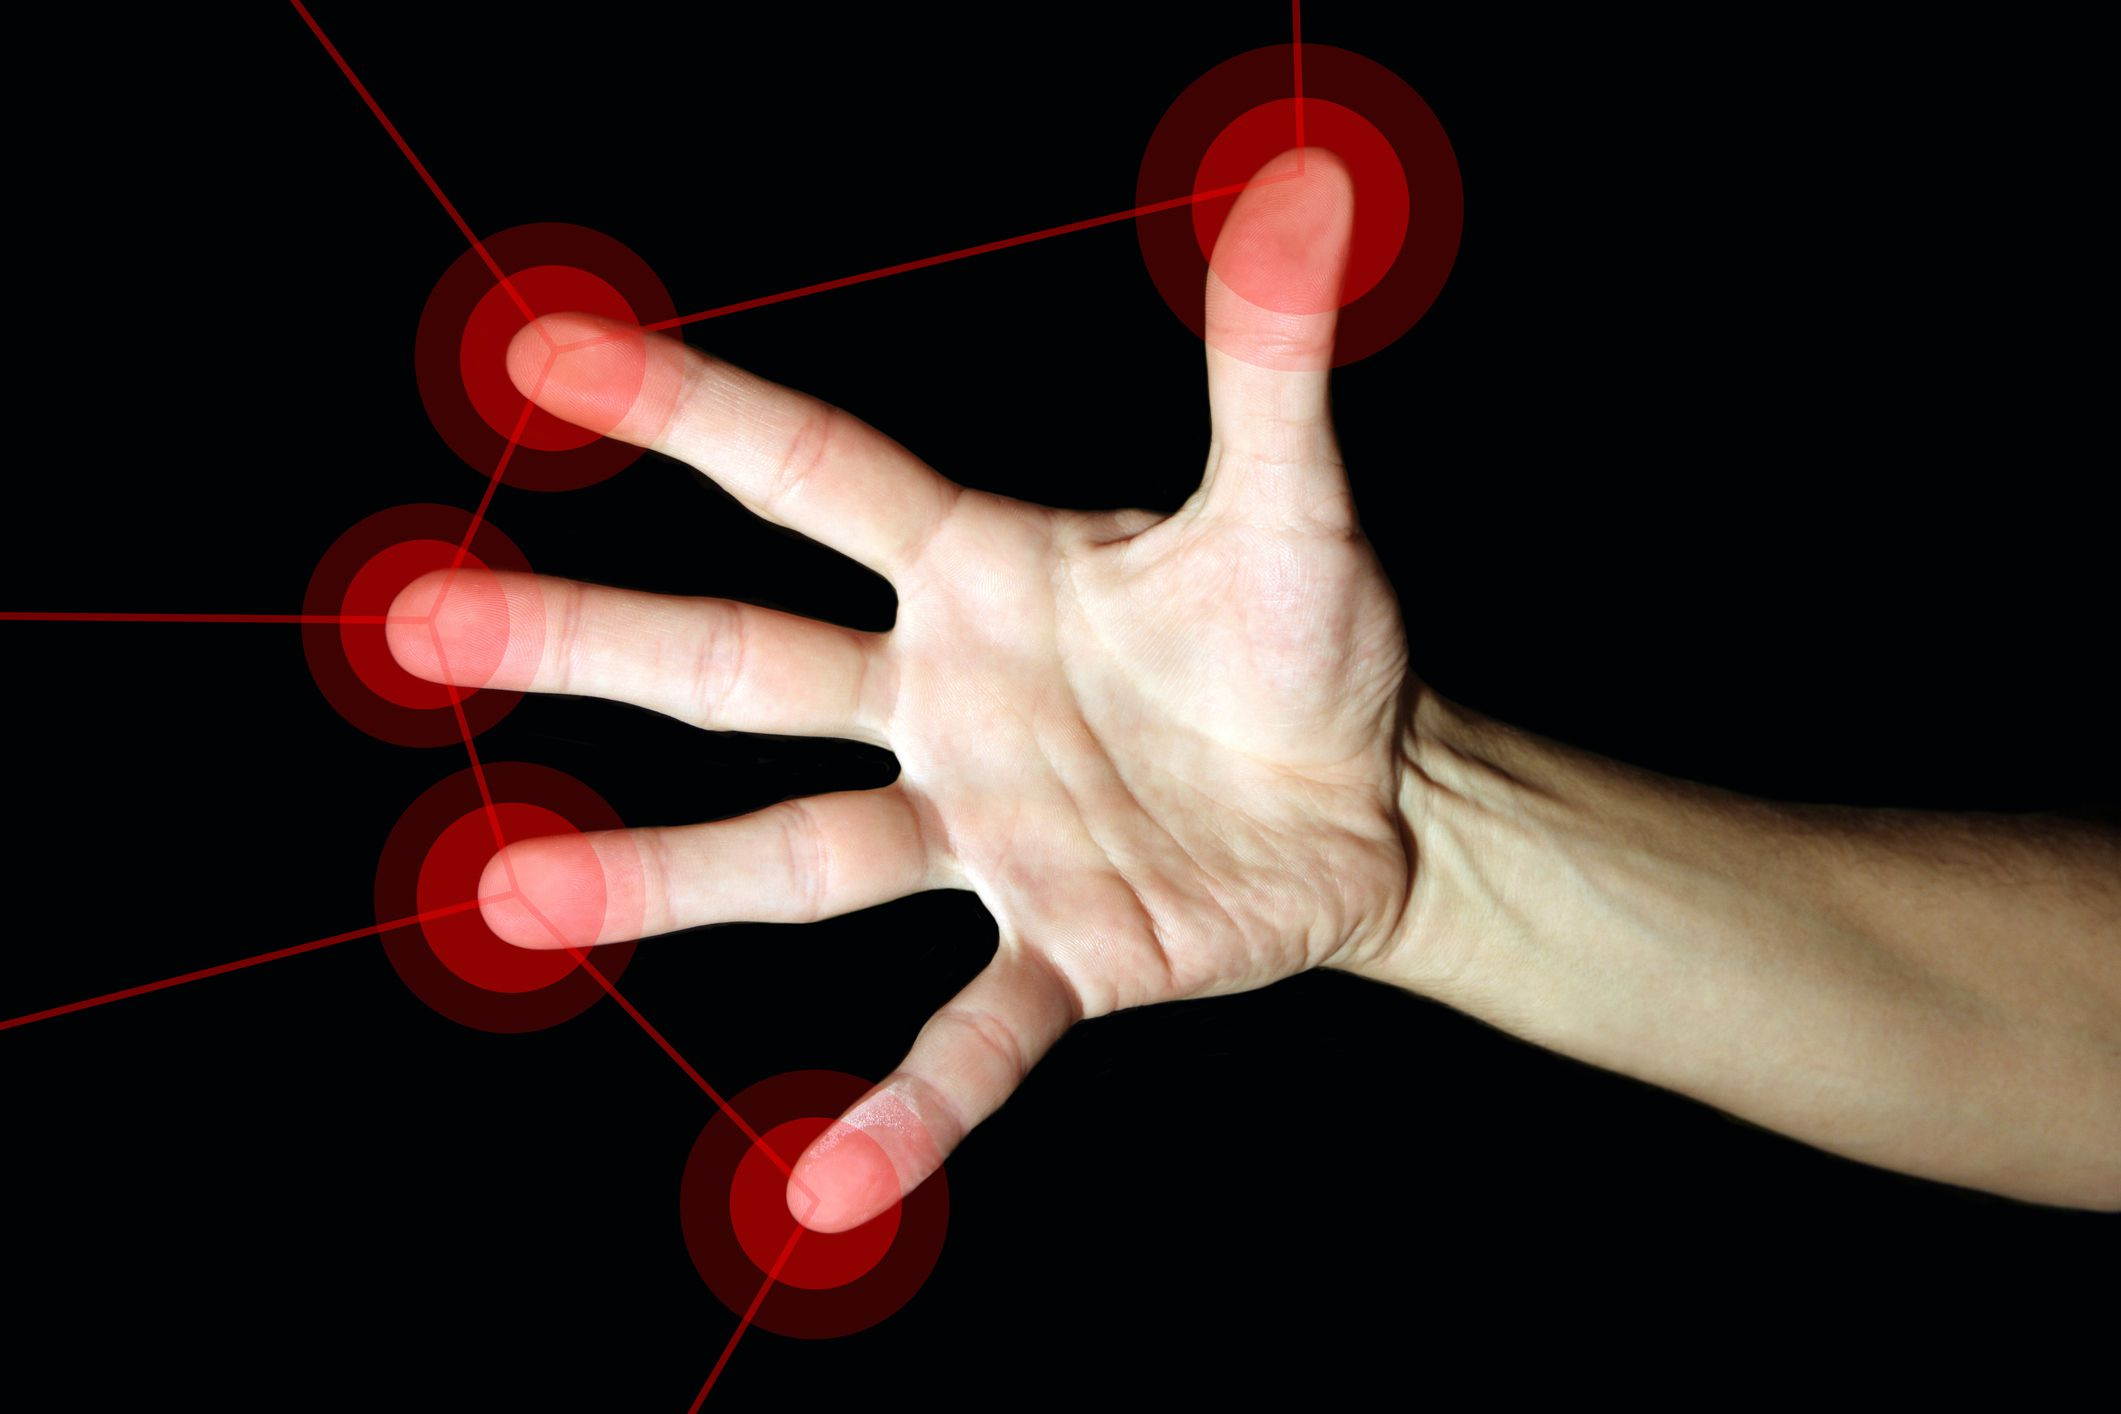 Photo of a hand with touchpoints and red lines on each finger to simulate a user interface